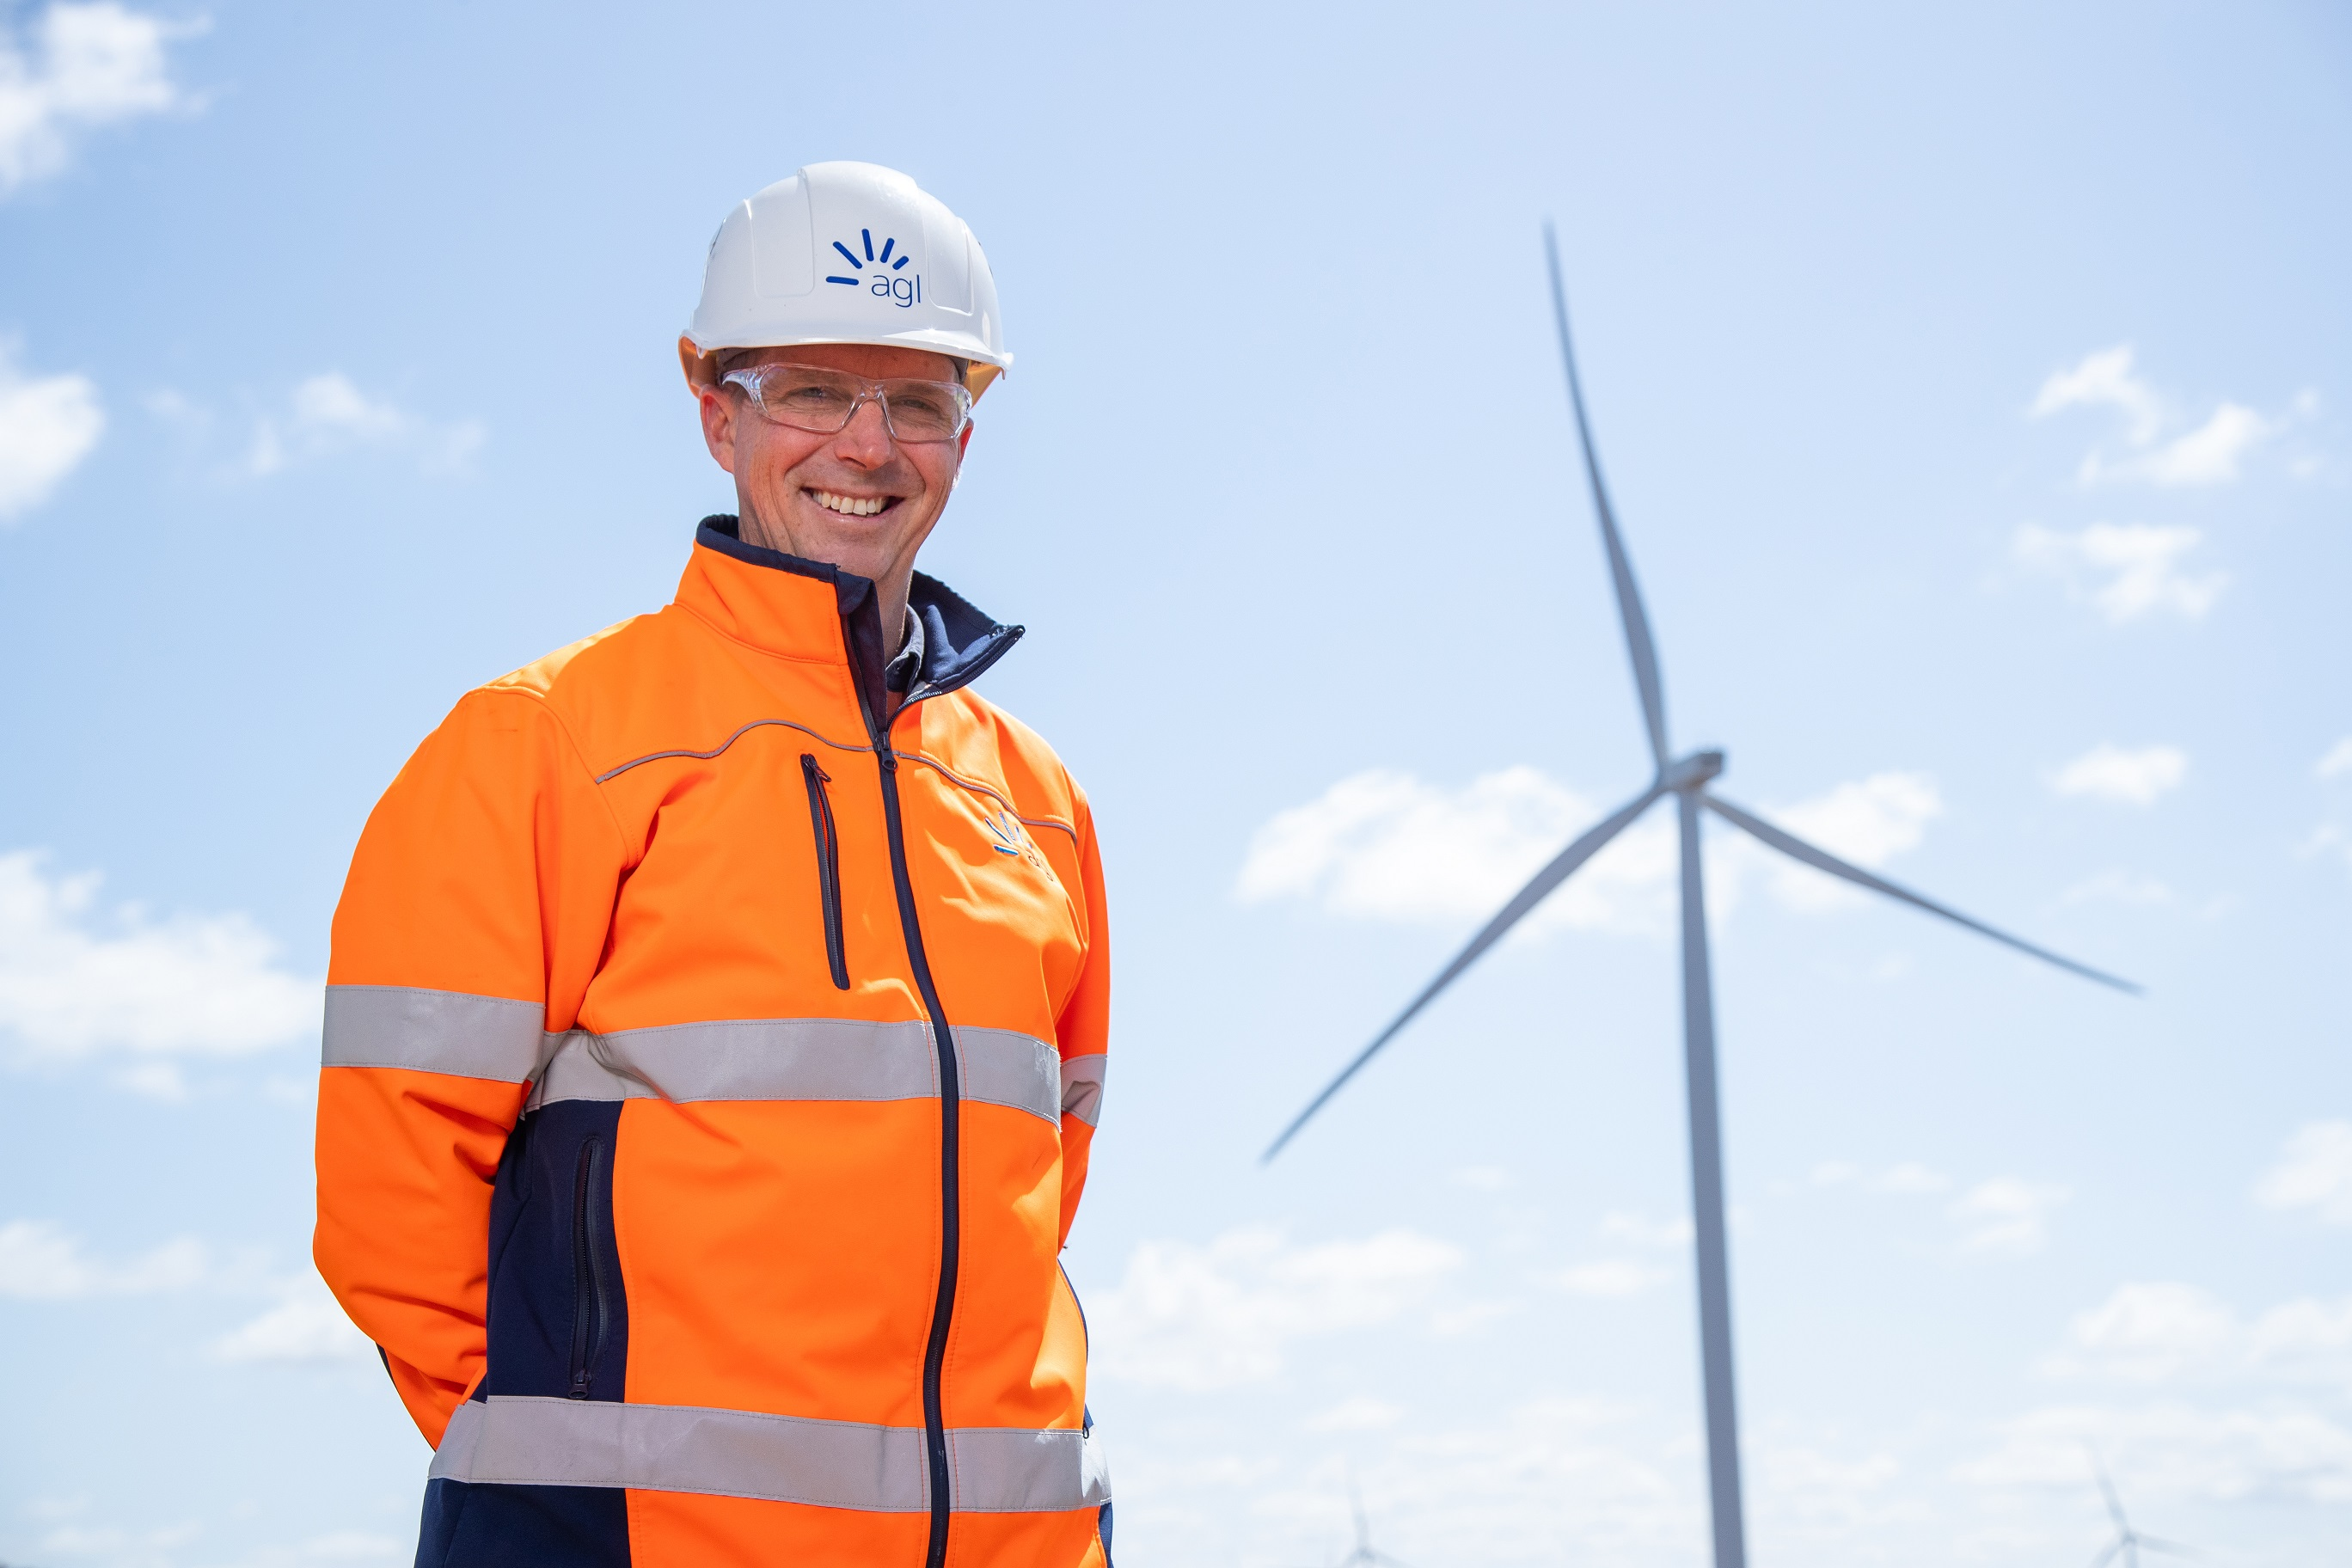 Strong Australia Toowoomba - Coopers Gap Wind Farm Meta Image